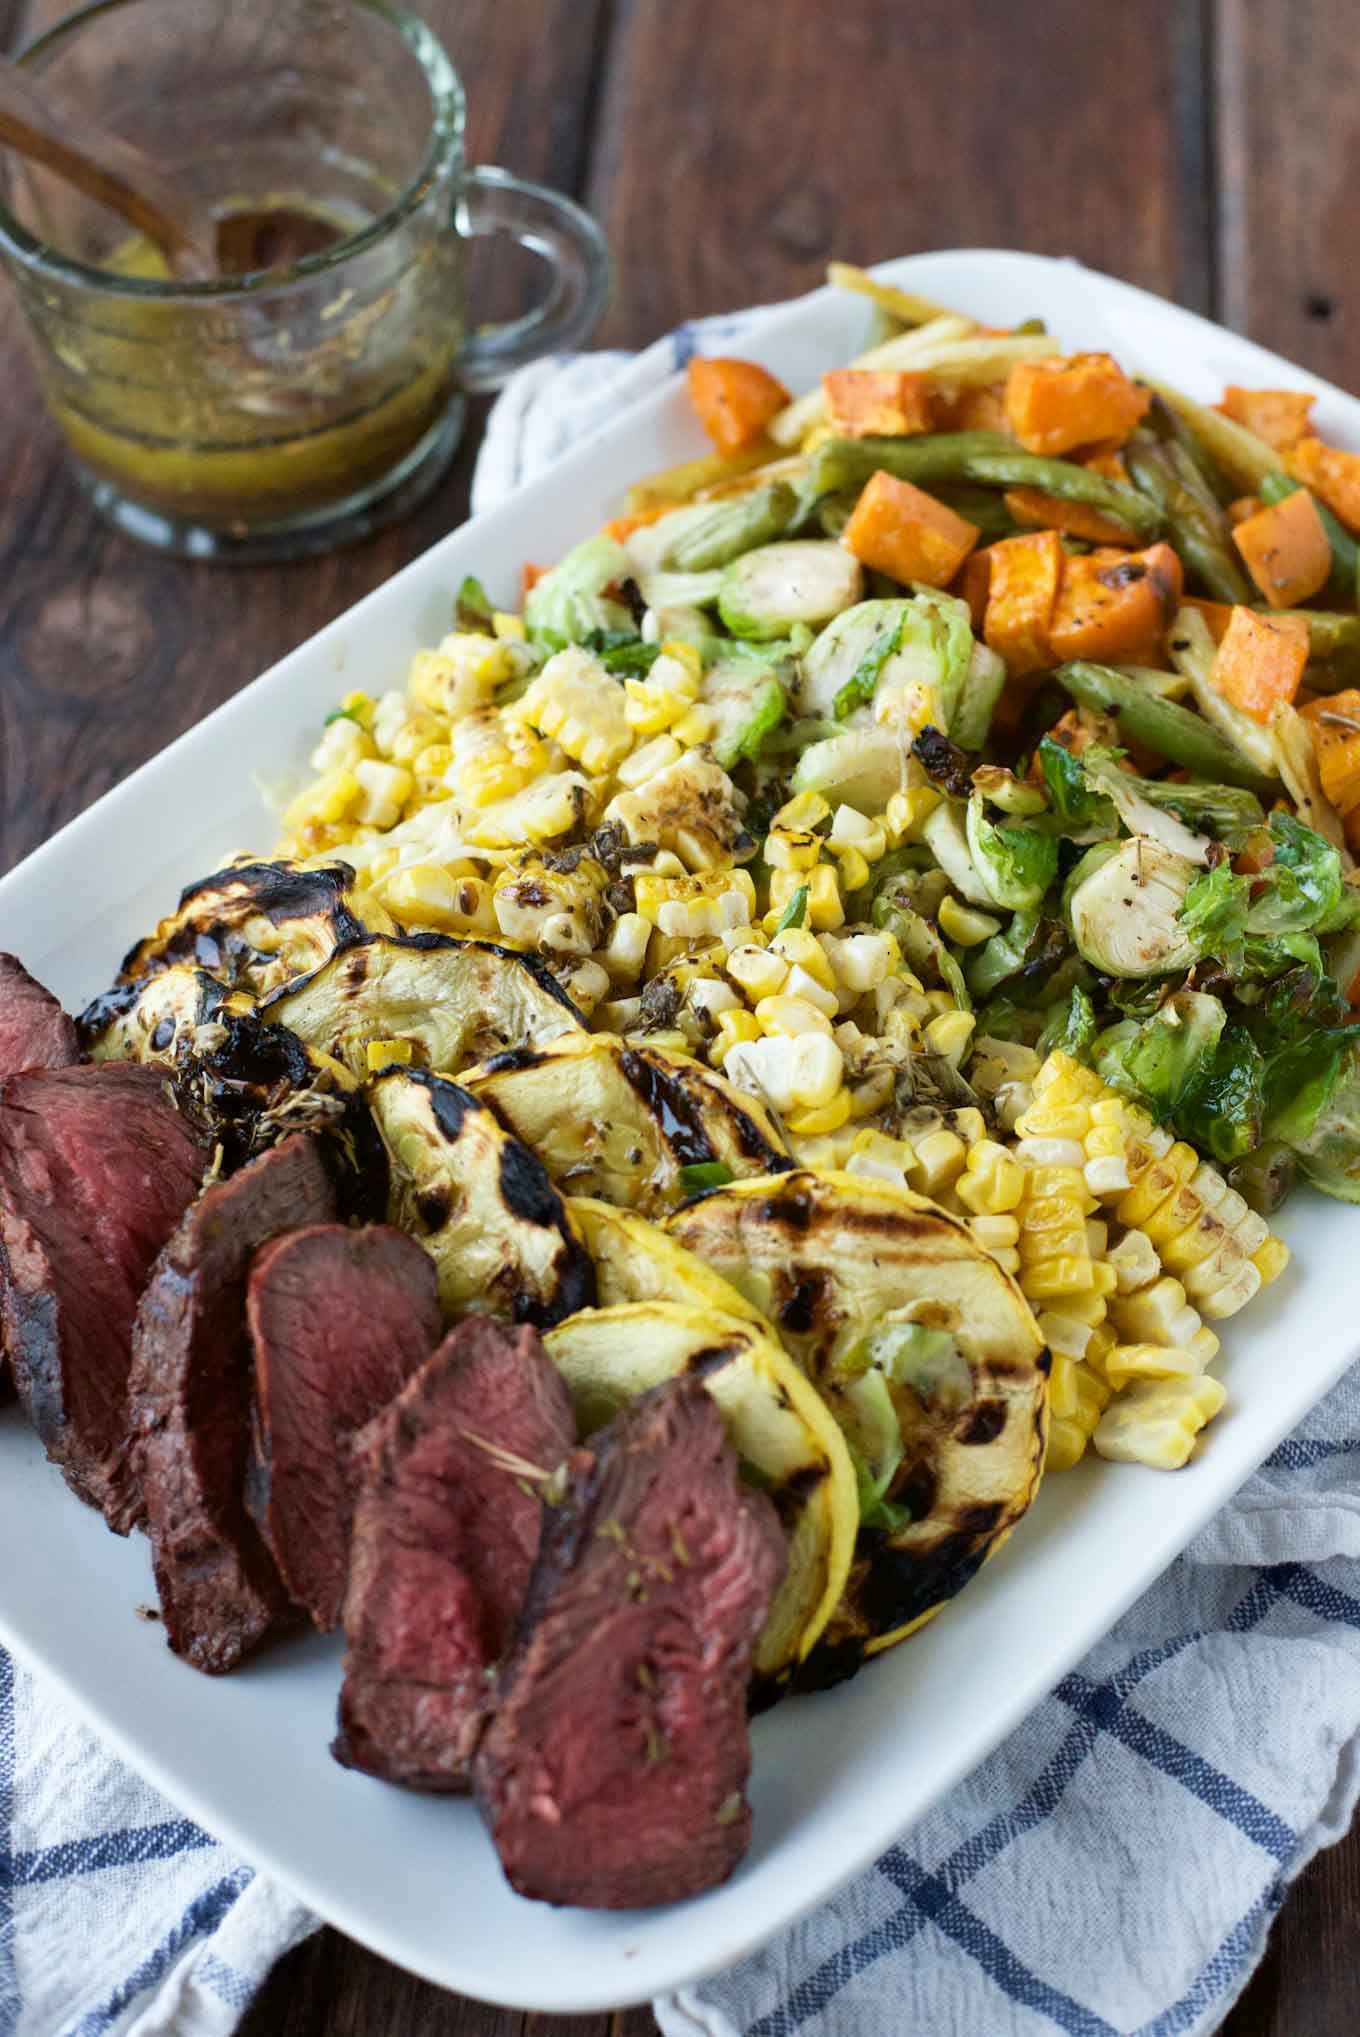 Grilled Veggie & Steak Salad with Herbed Balsamic Butter Sauce. Because everything is better with butter.